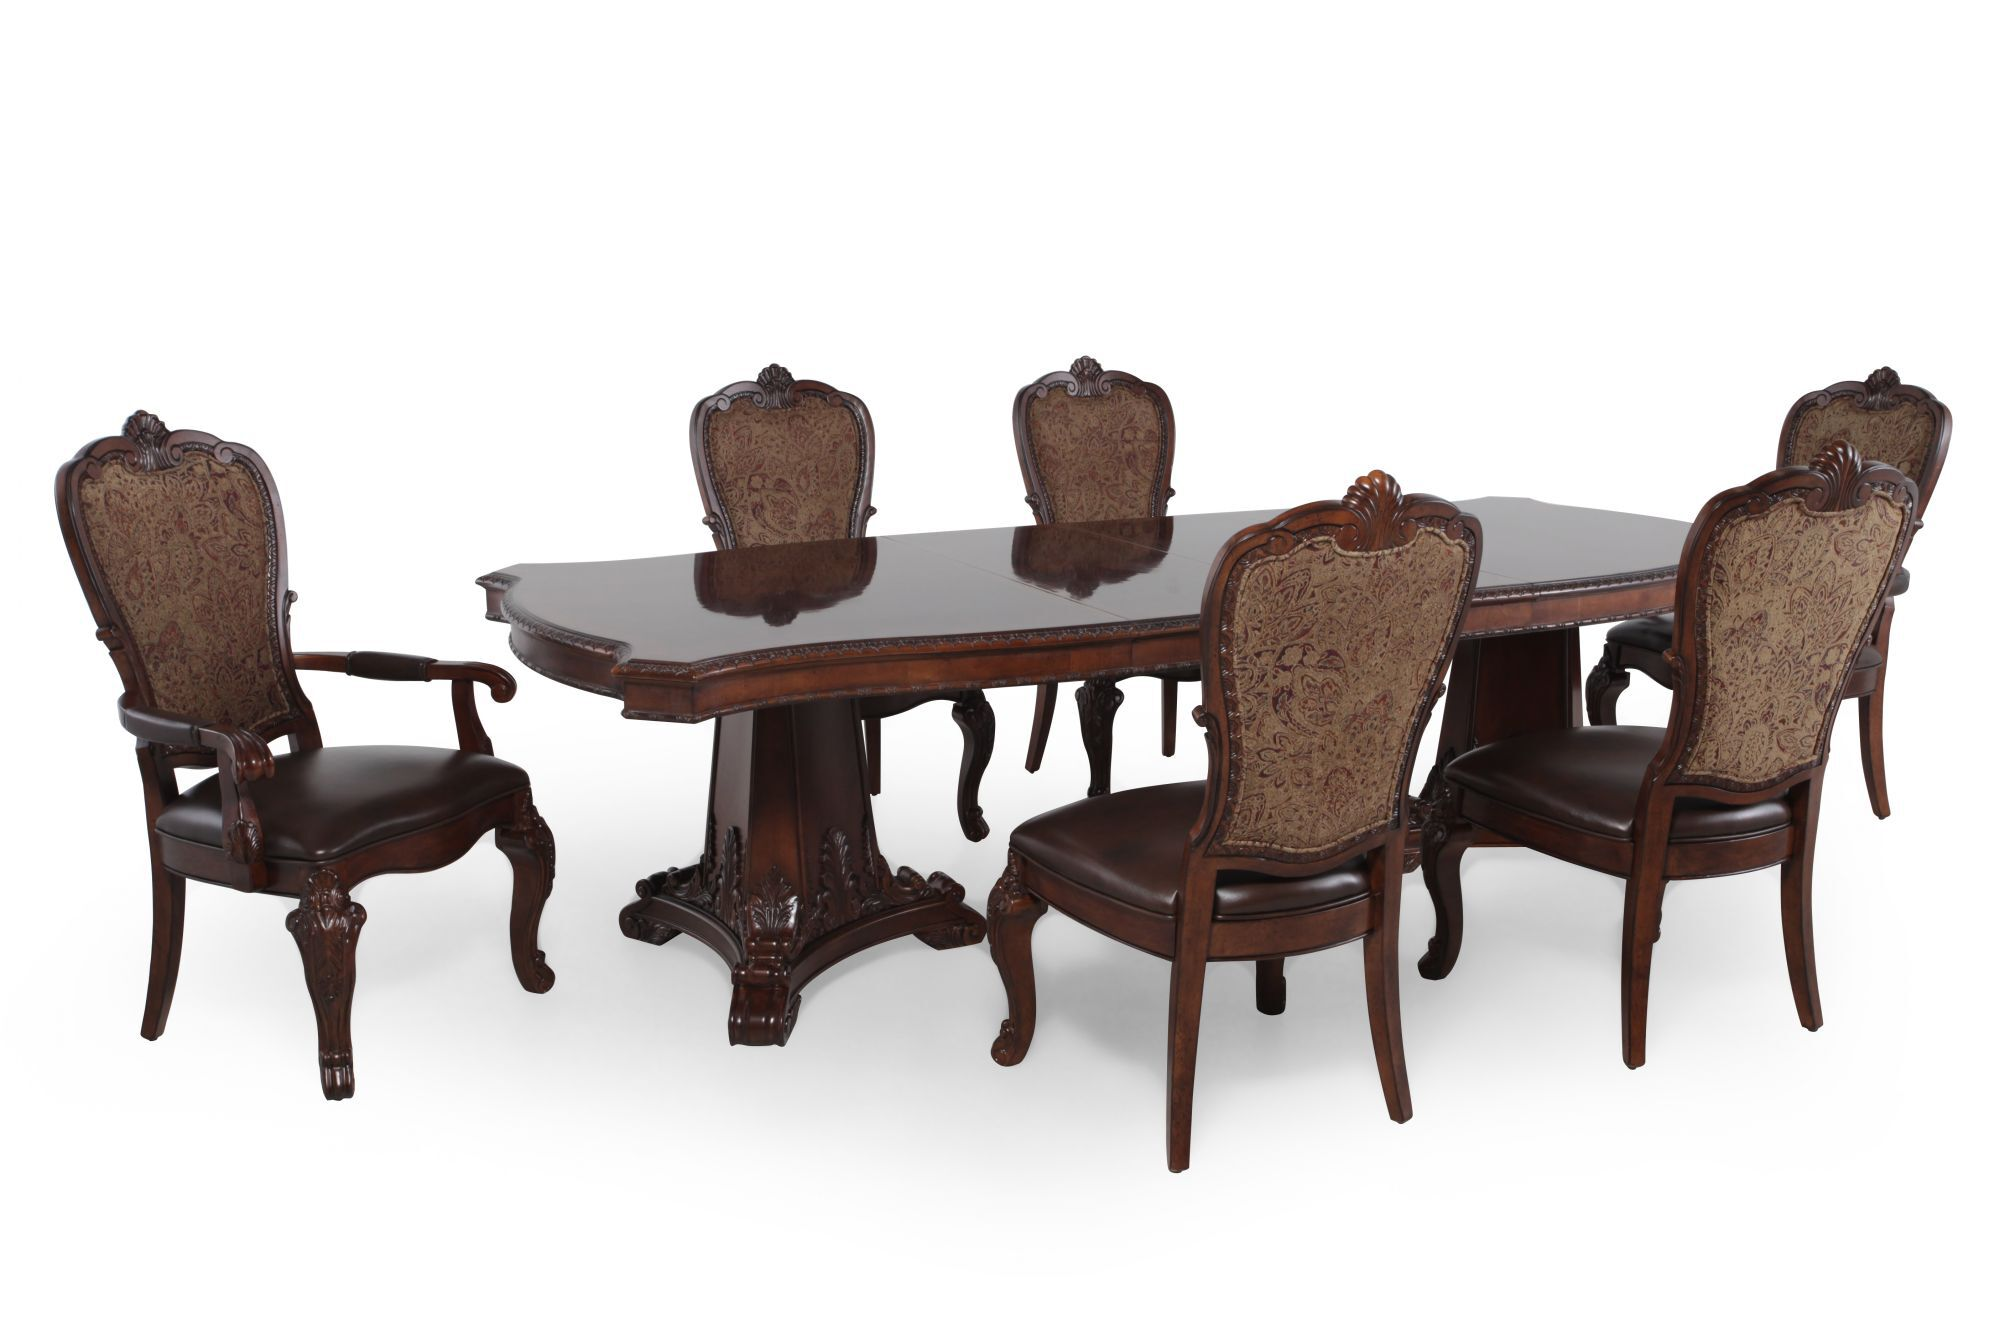 A.R.T. Furniture Seven-Piece Old World Pedestal Table